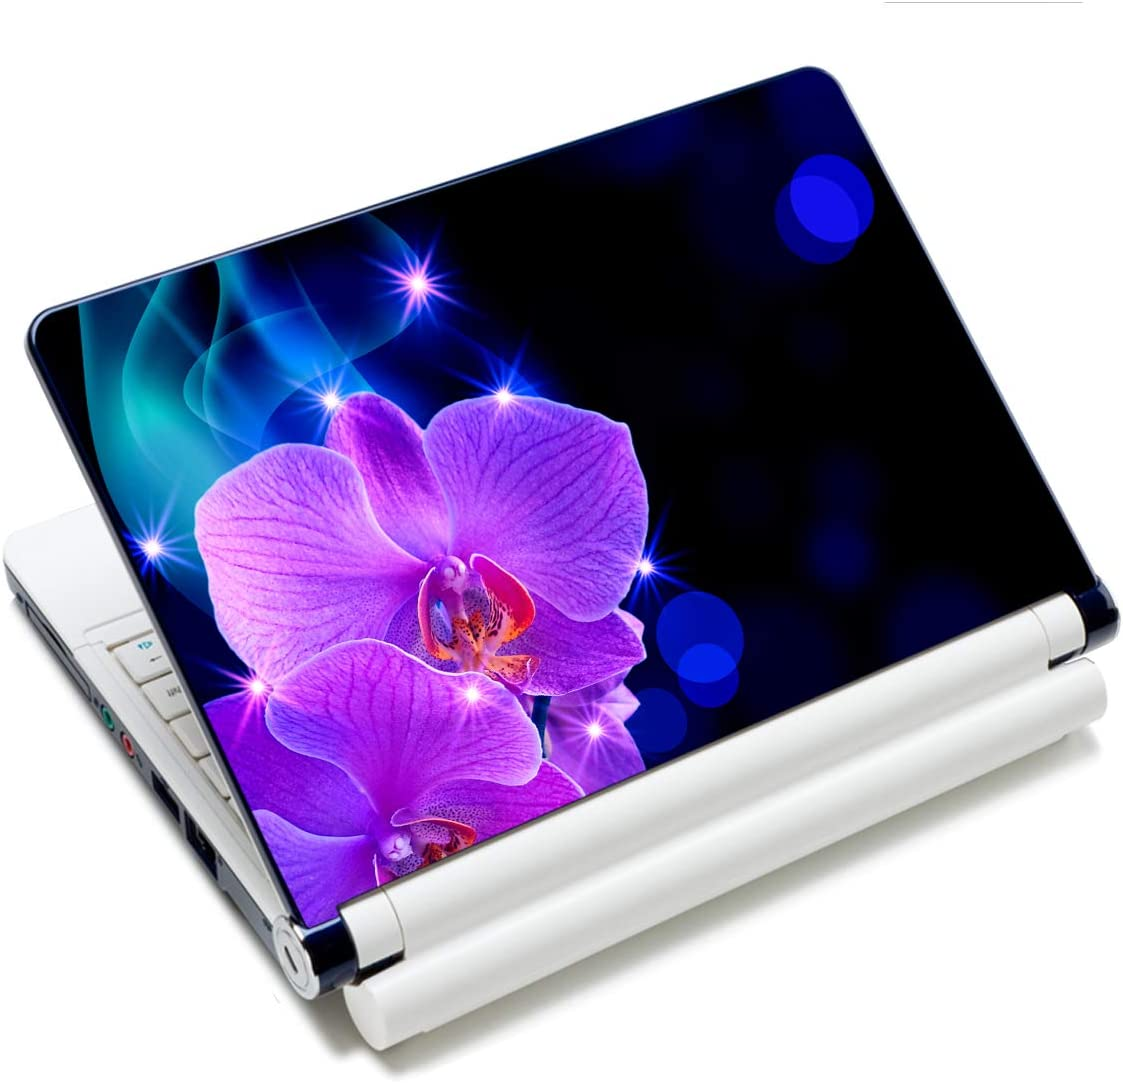 Laptop Notebook Skin Sticker Cover Decal Fits 12 13 13.3 14 15 15.4 15.6 inch Laptop Protector Notebook PC | Easy to Apply, Remove and Change Styles (Phalaenopsis)